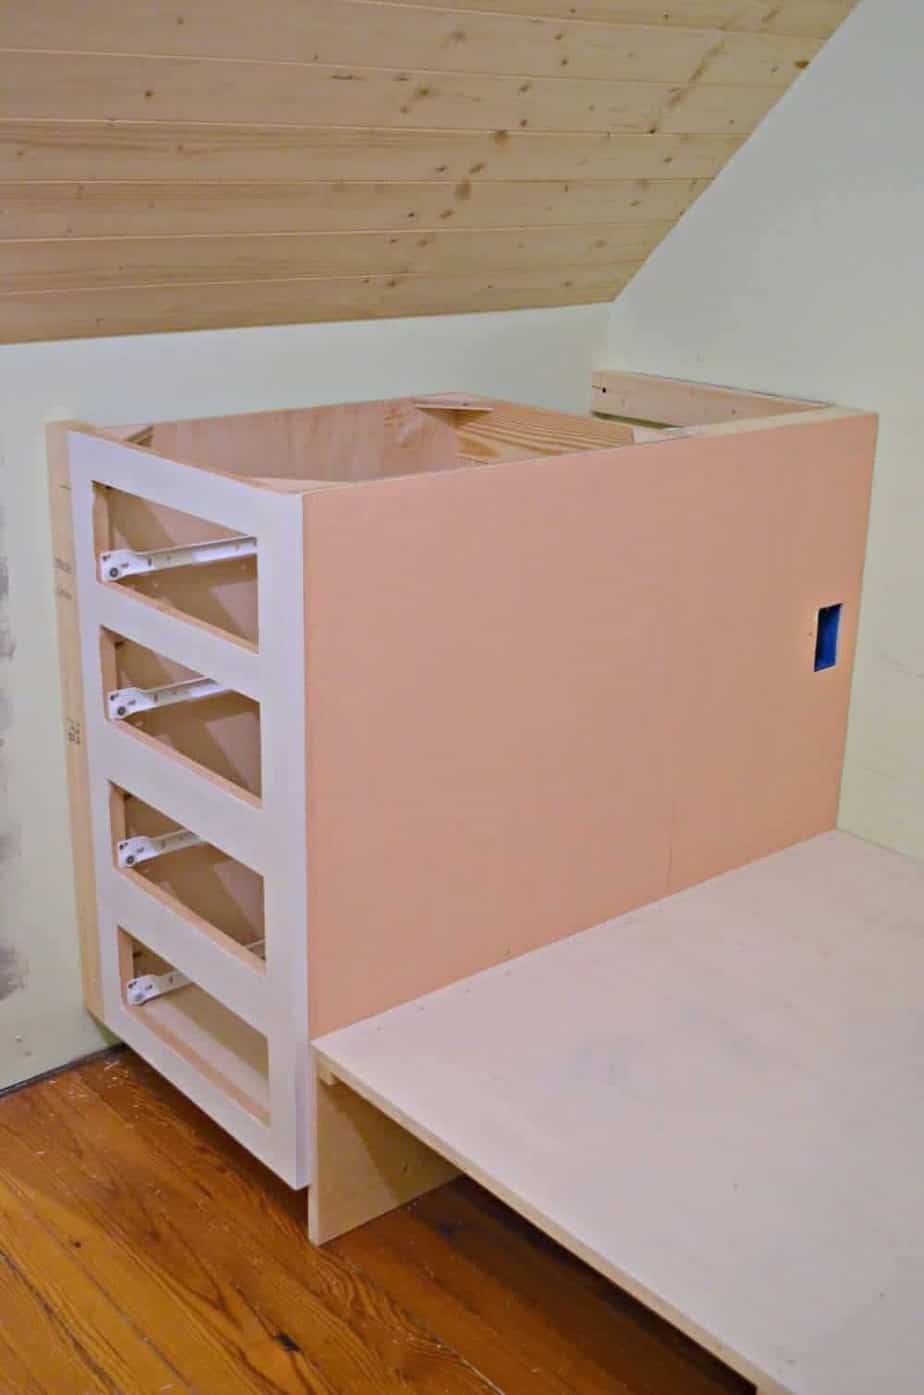 How To Make A Built-in Bed Using Kitchen Cabinets